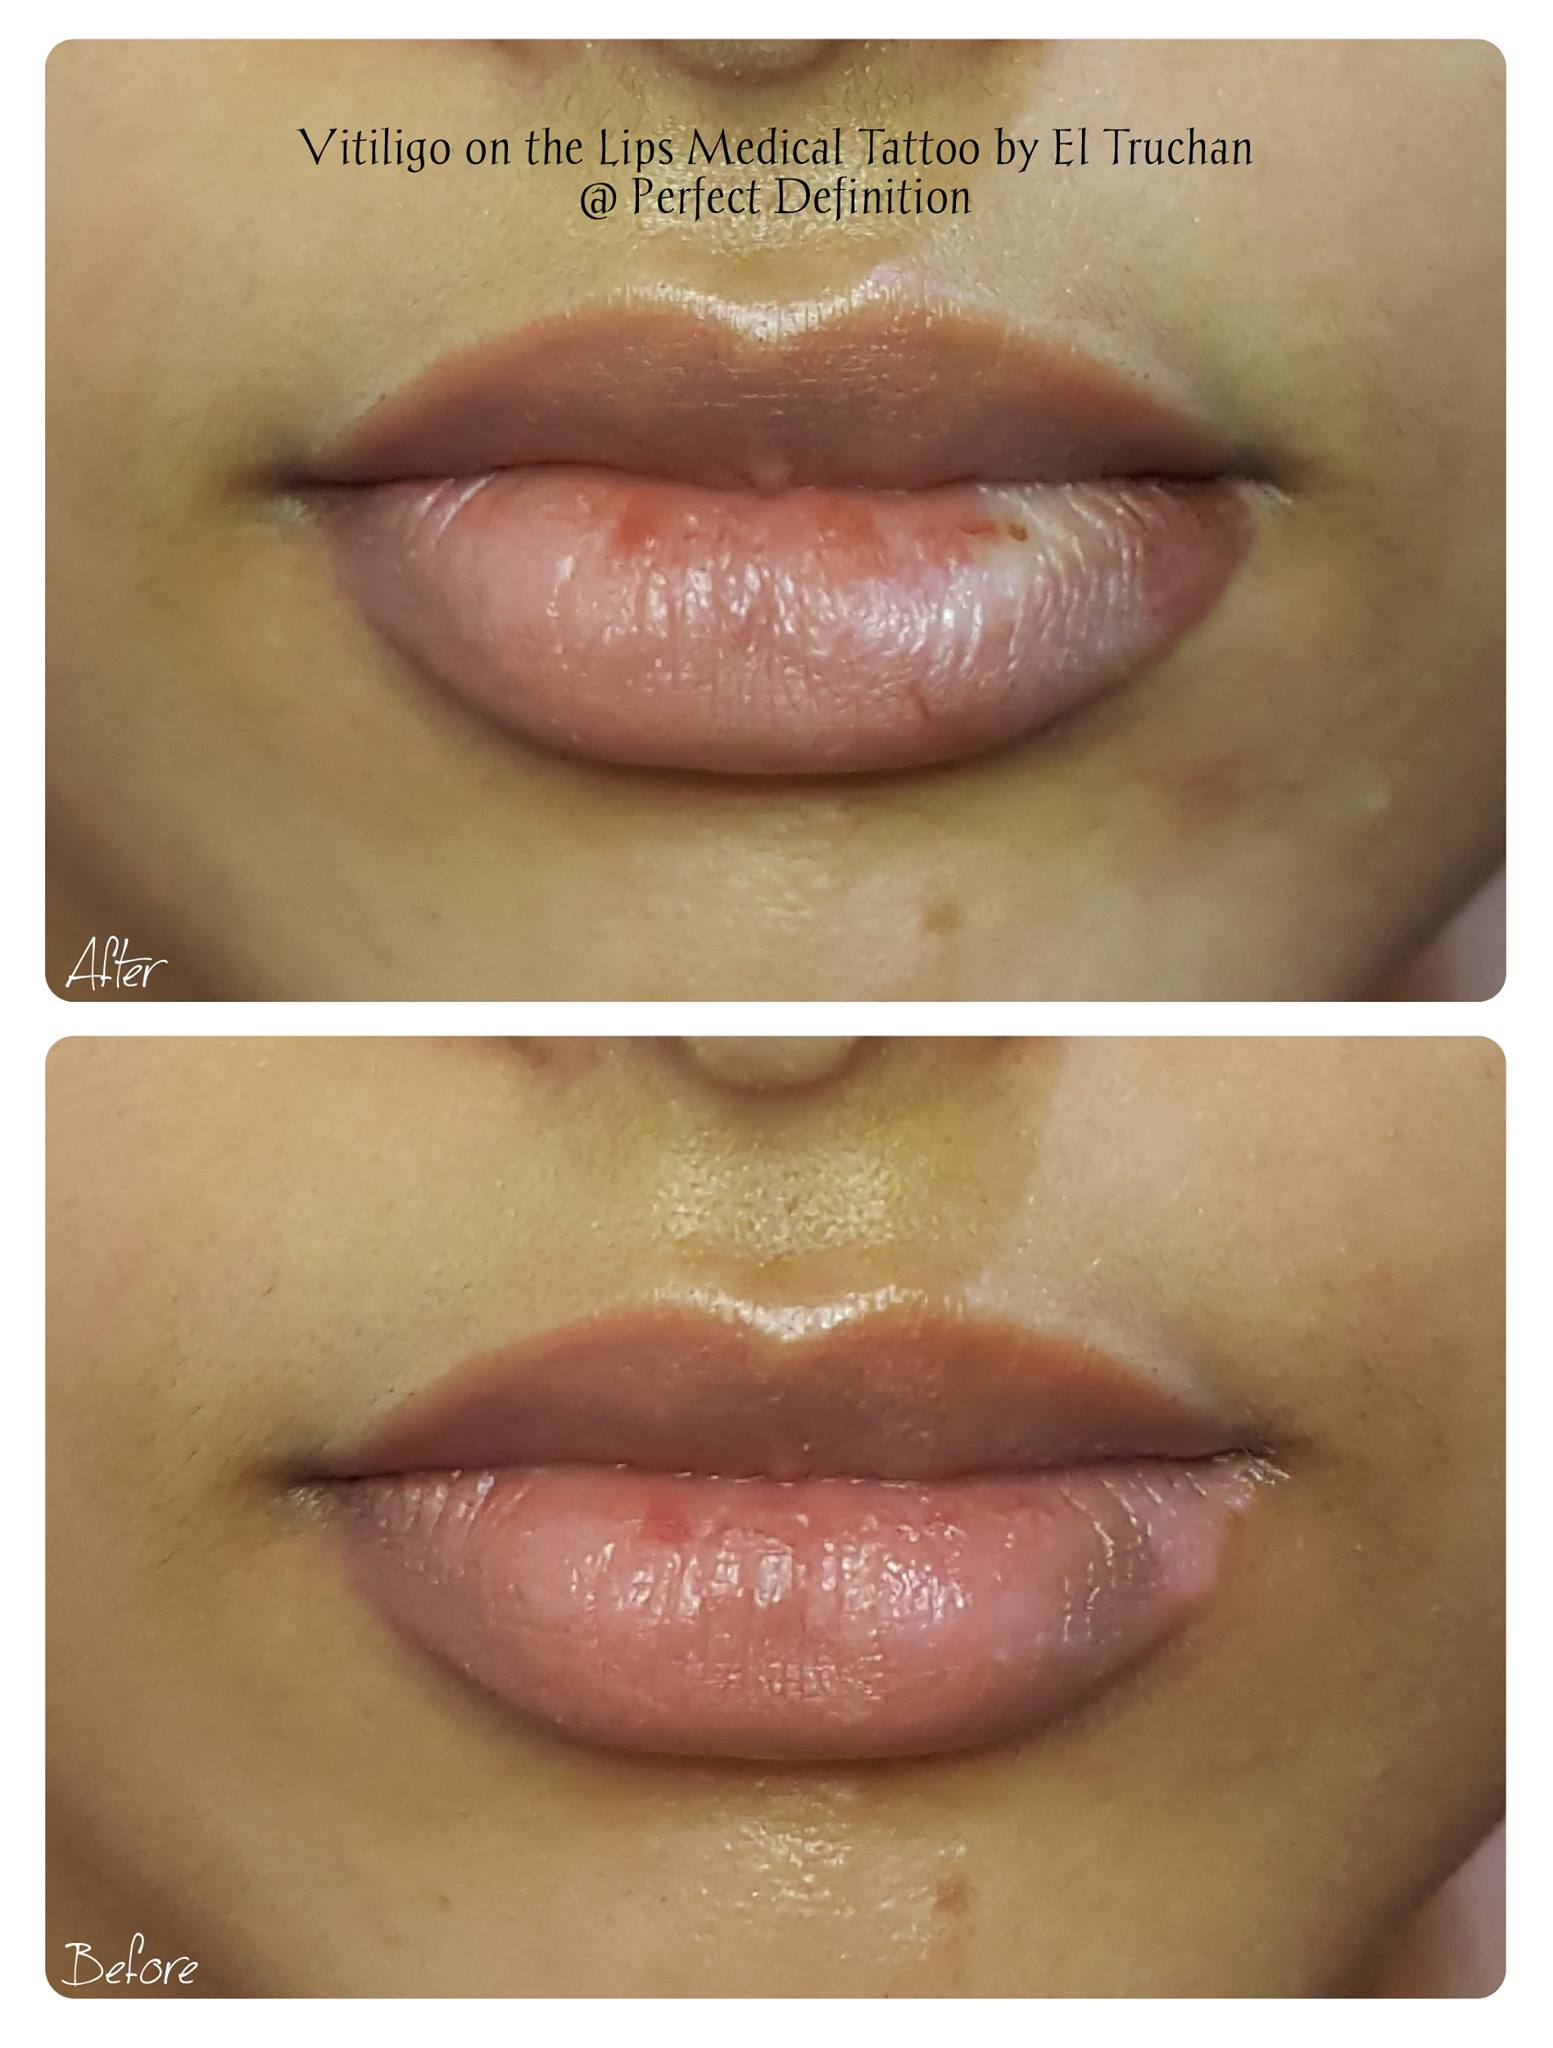 Vitiligo on the Lips Medical Tattoo by E